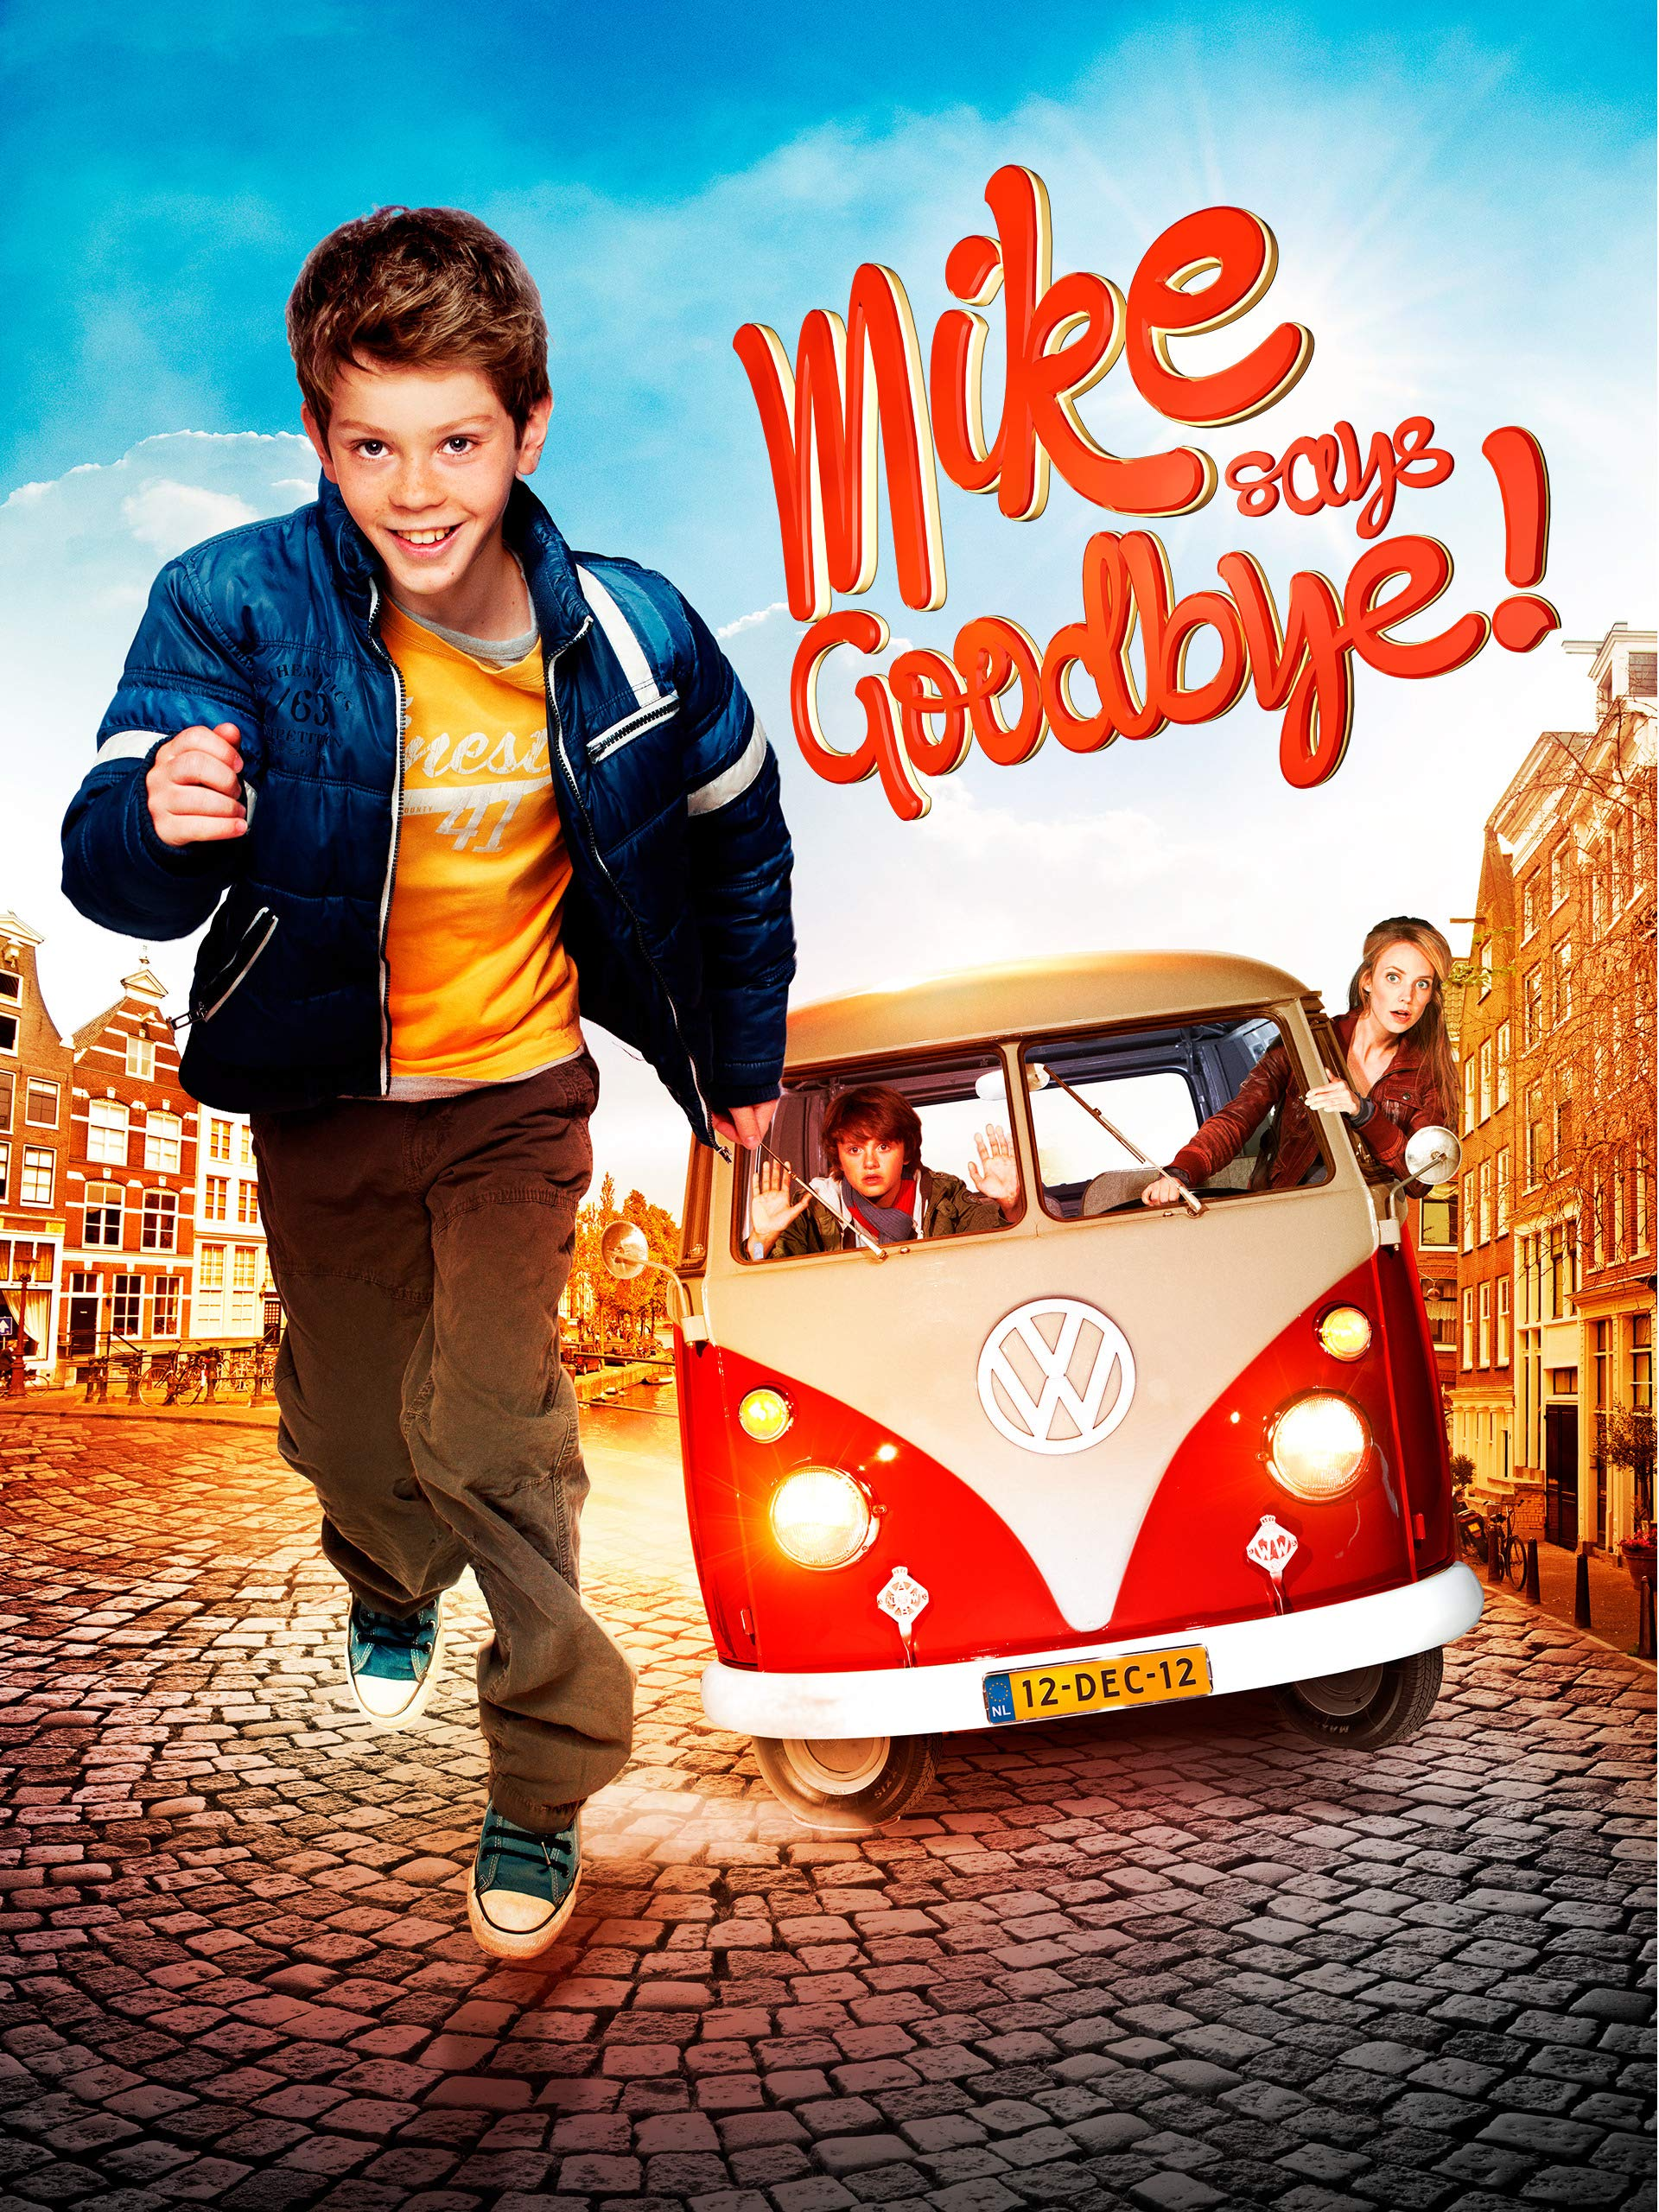 Mike says Goodbye! on Amazon Prime Instant Video UK